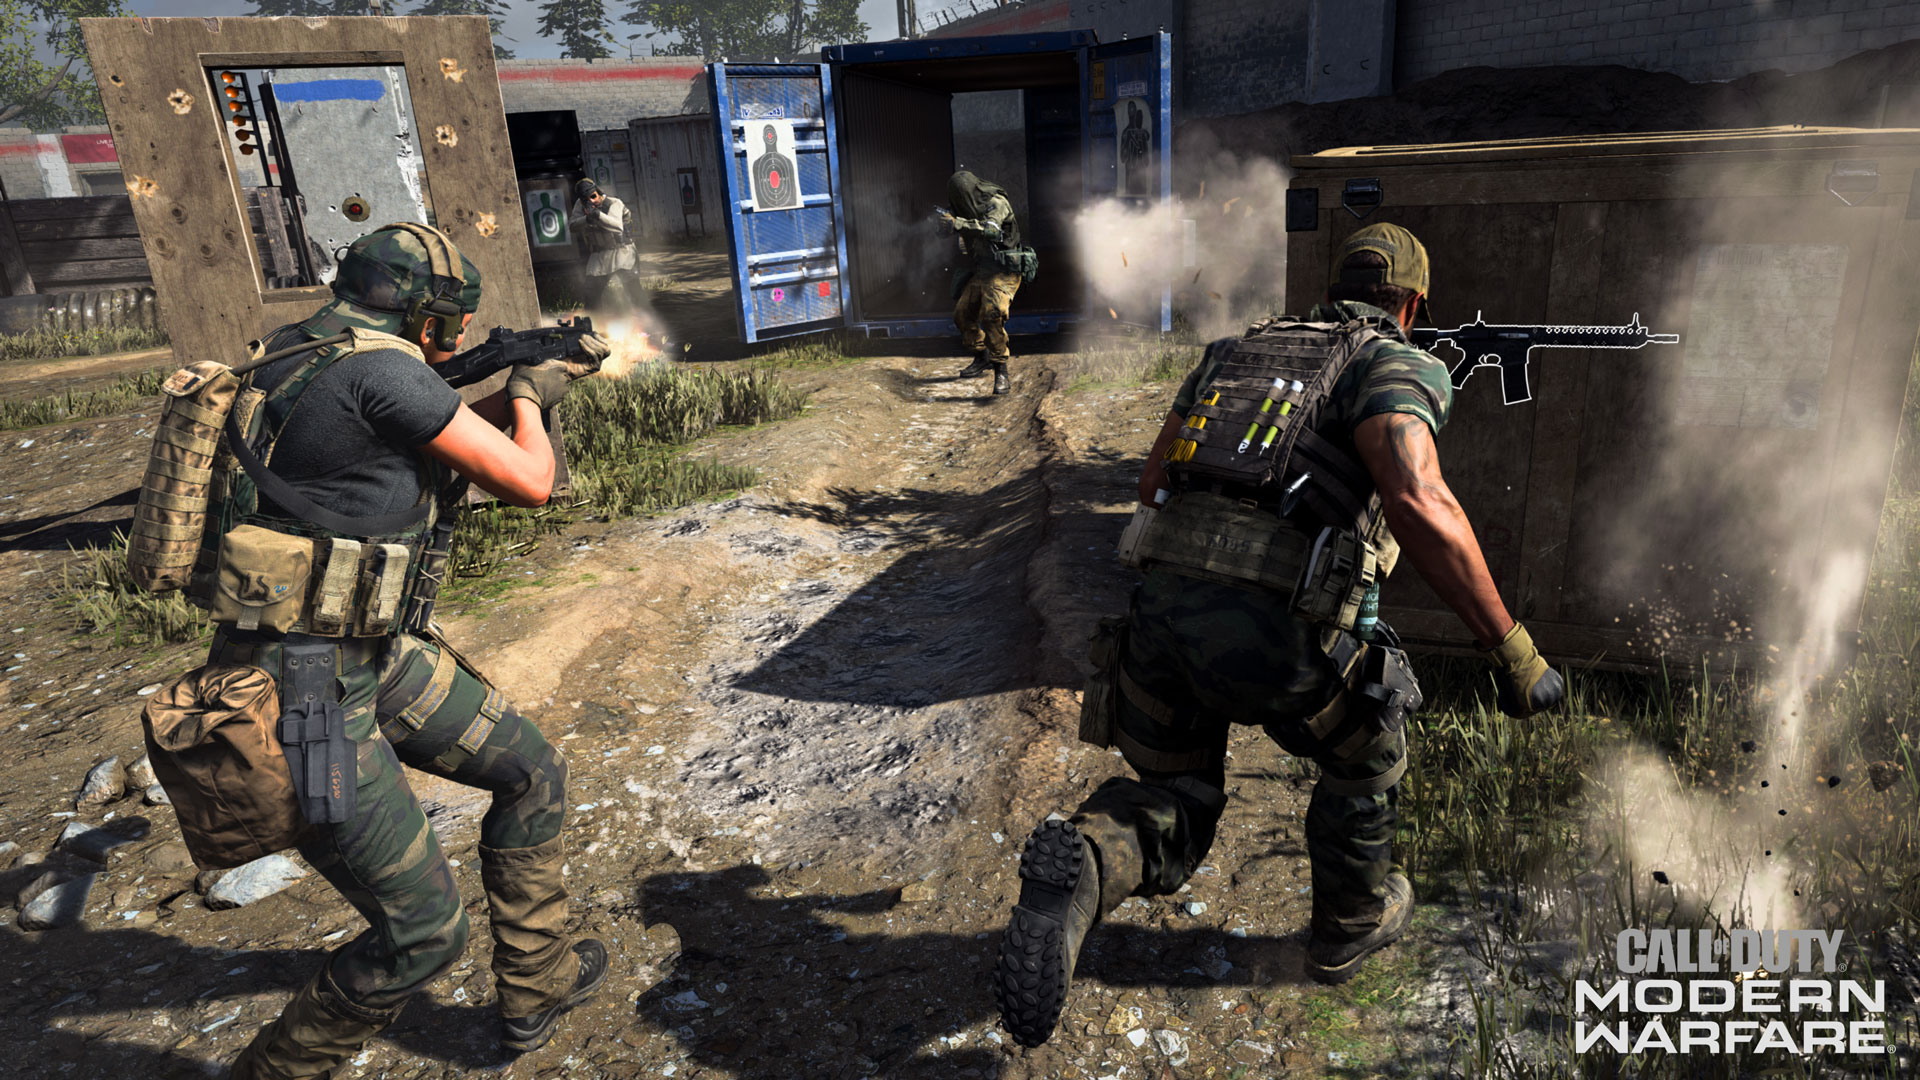 New Modern Warfare reports say Warzone will be free-to-play, support 200 players, and launch in early March screenshot